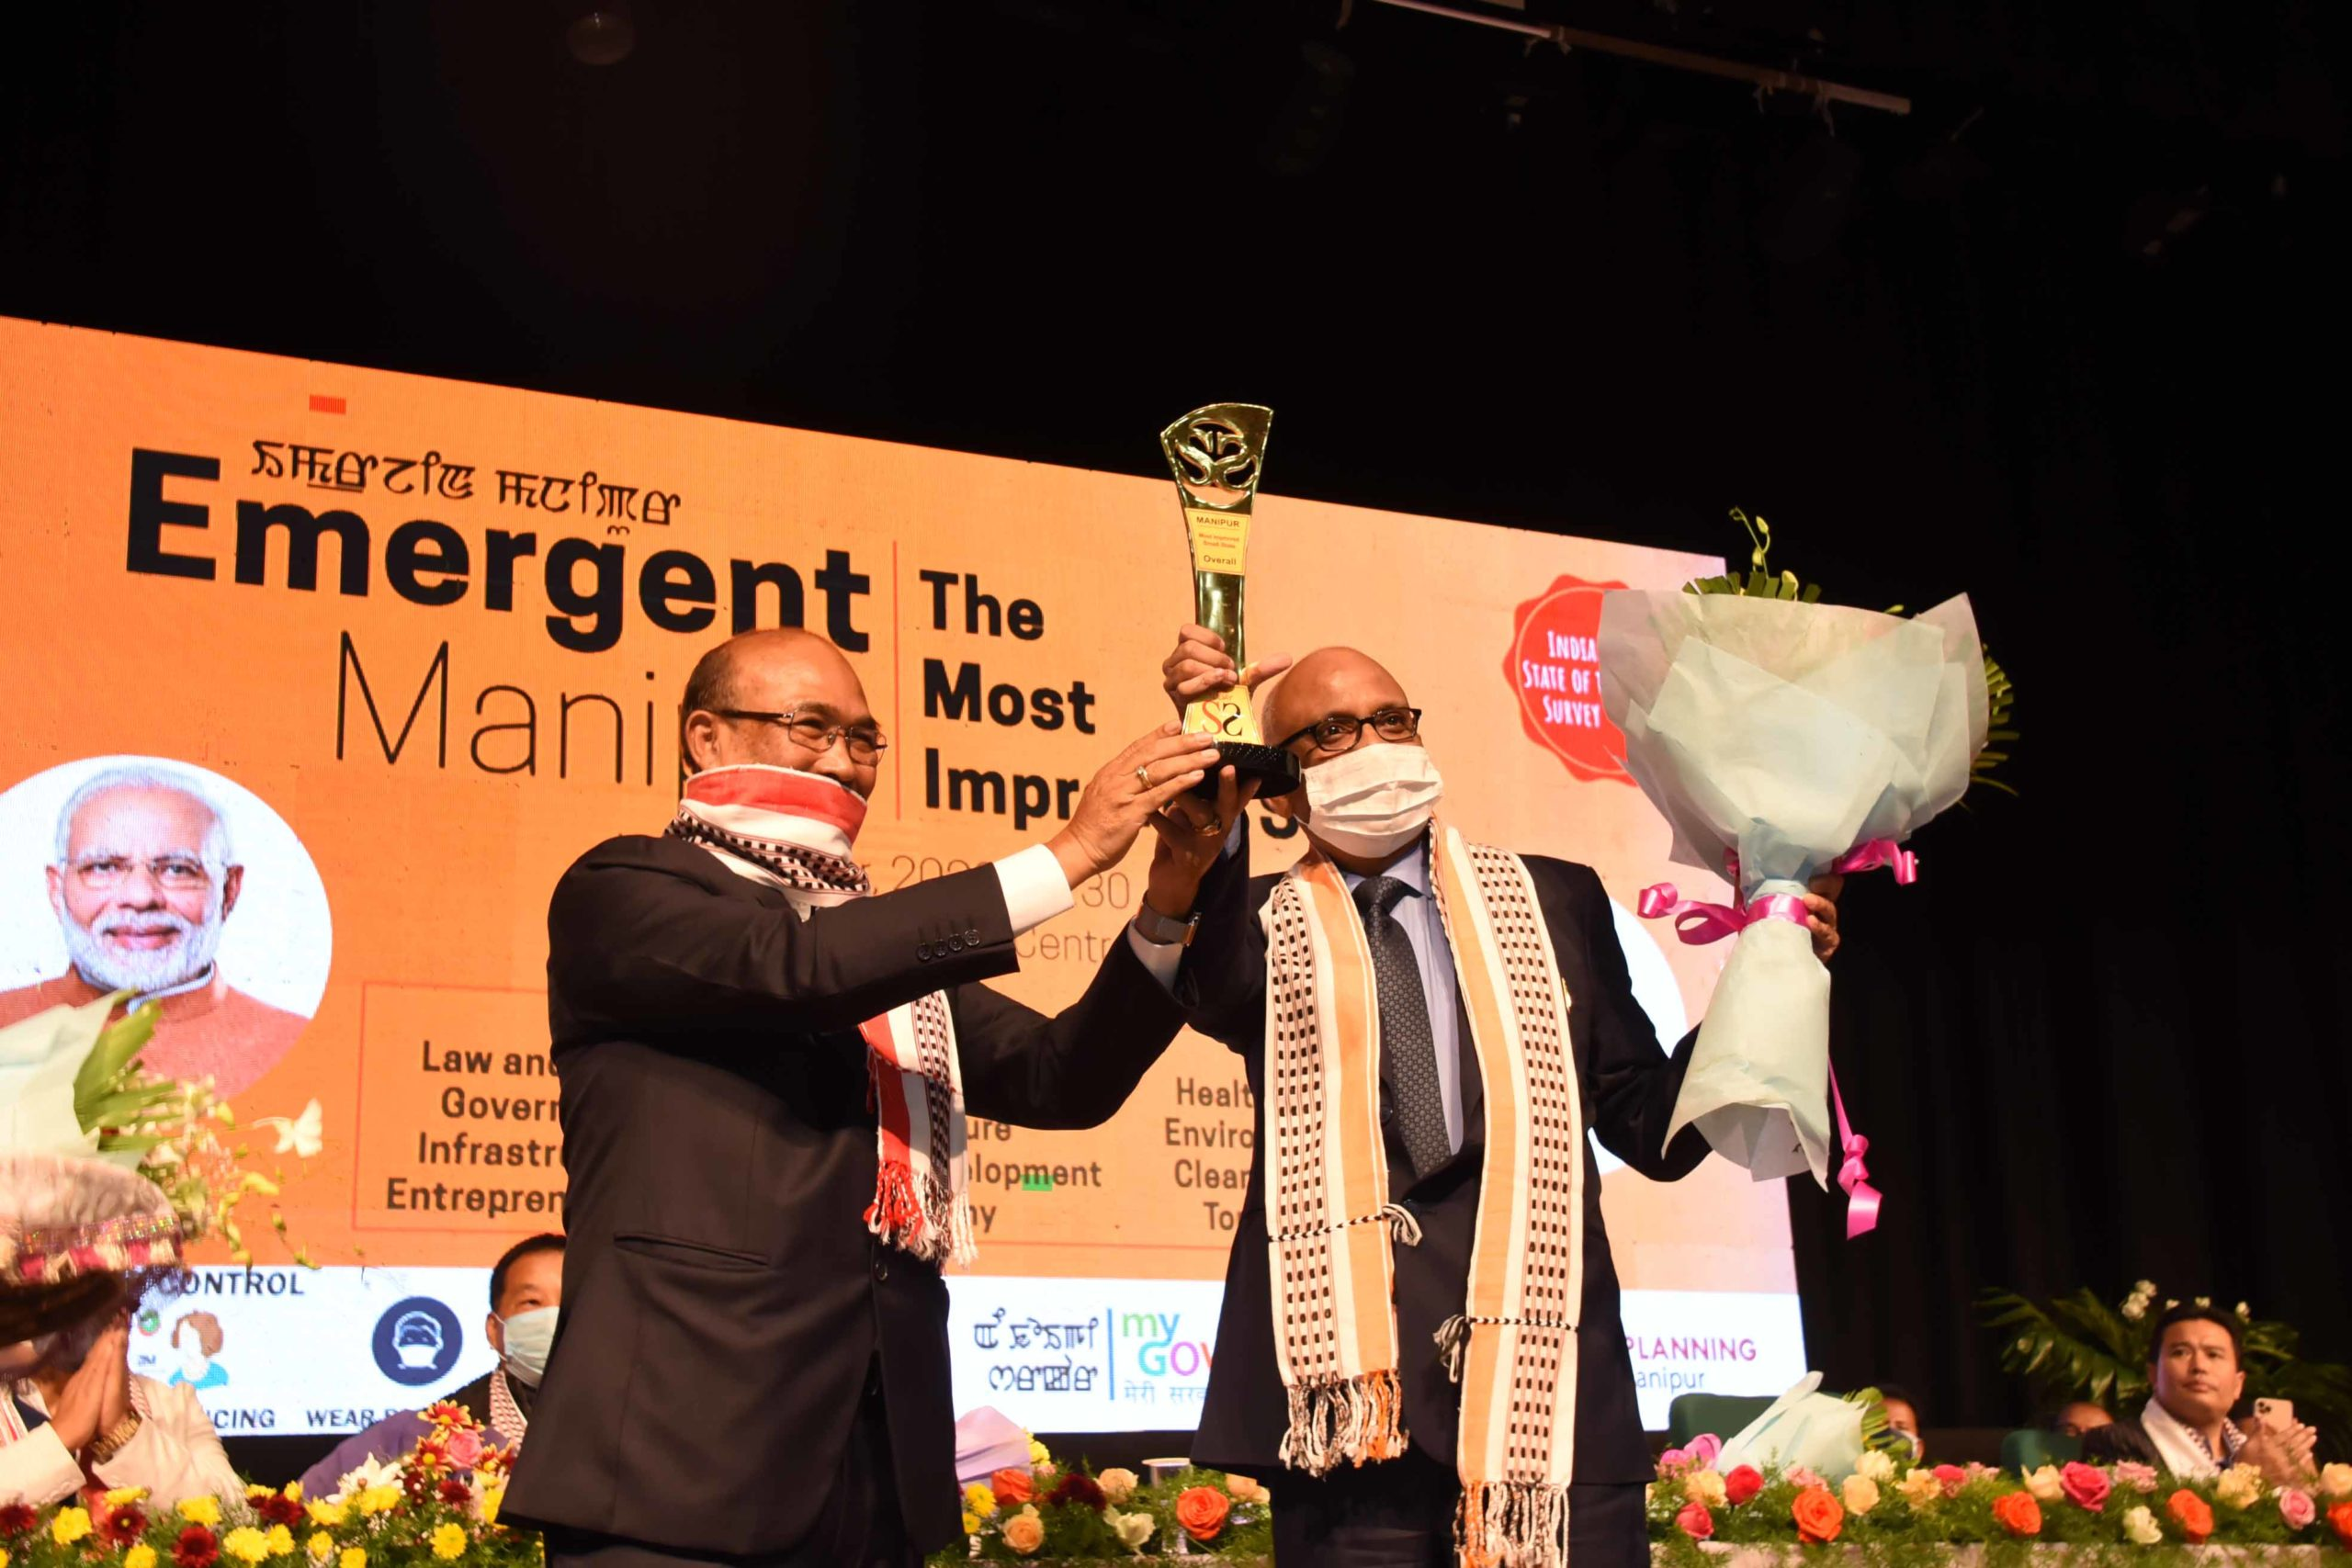 Manipur Emergent Event Held